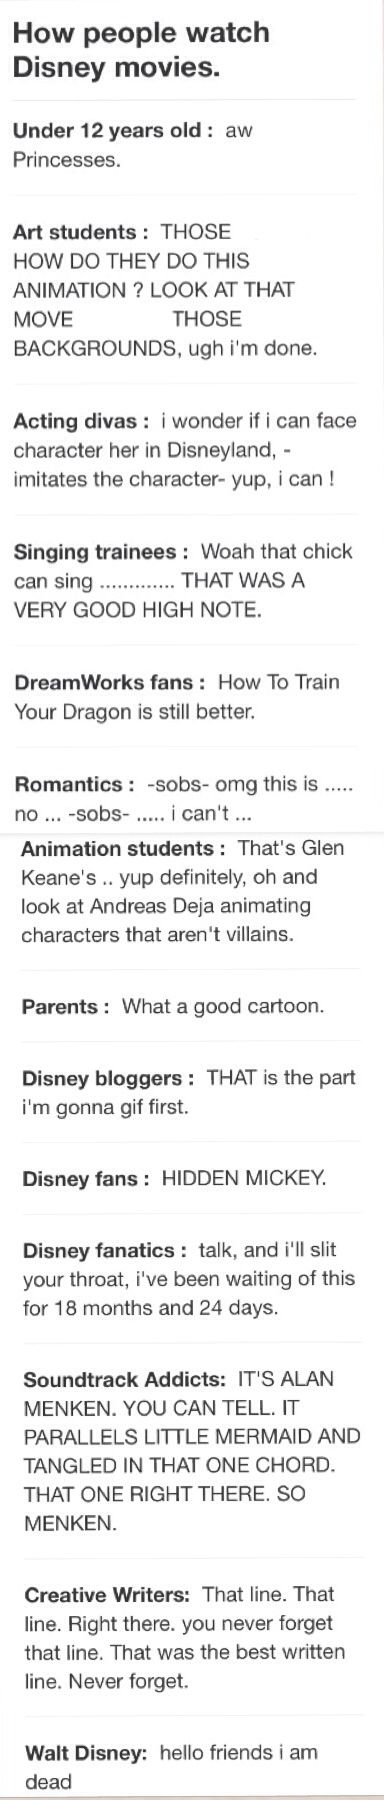 WHOA THIS IS THE MOST ACCURATE POST EVER POSTED i am part of the art students, animation students, disney bloggers, disney fanatics, and creative writers because i have done all of those